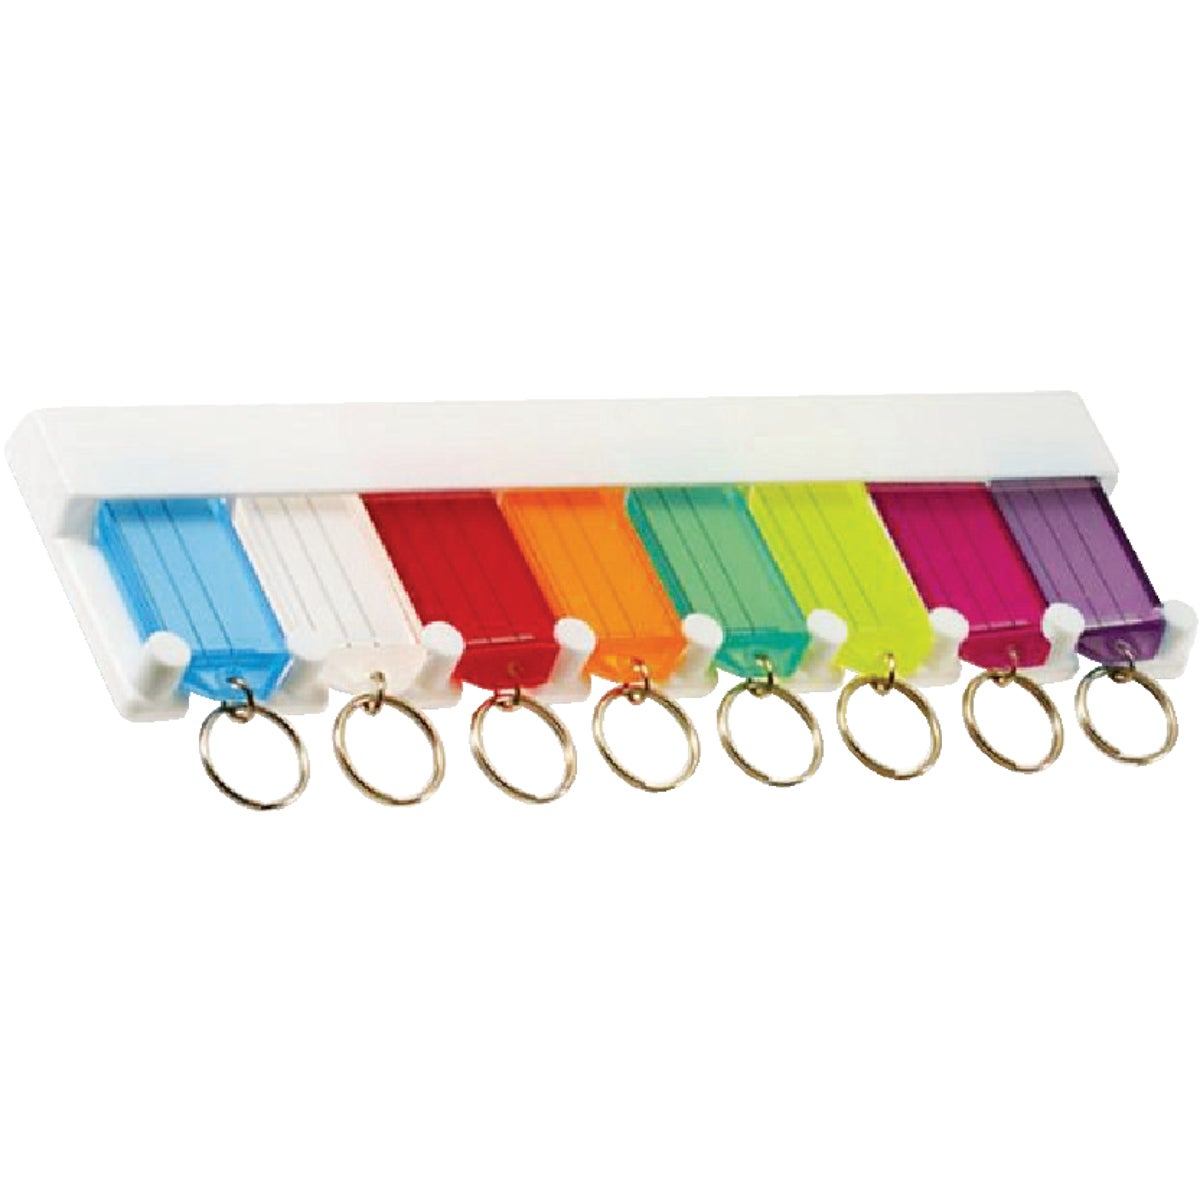 8-KEY TAG RACK - 60580 by Lucky Line Prod Inc